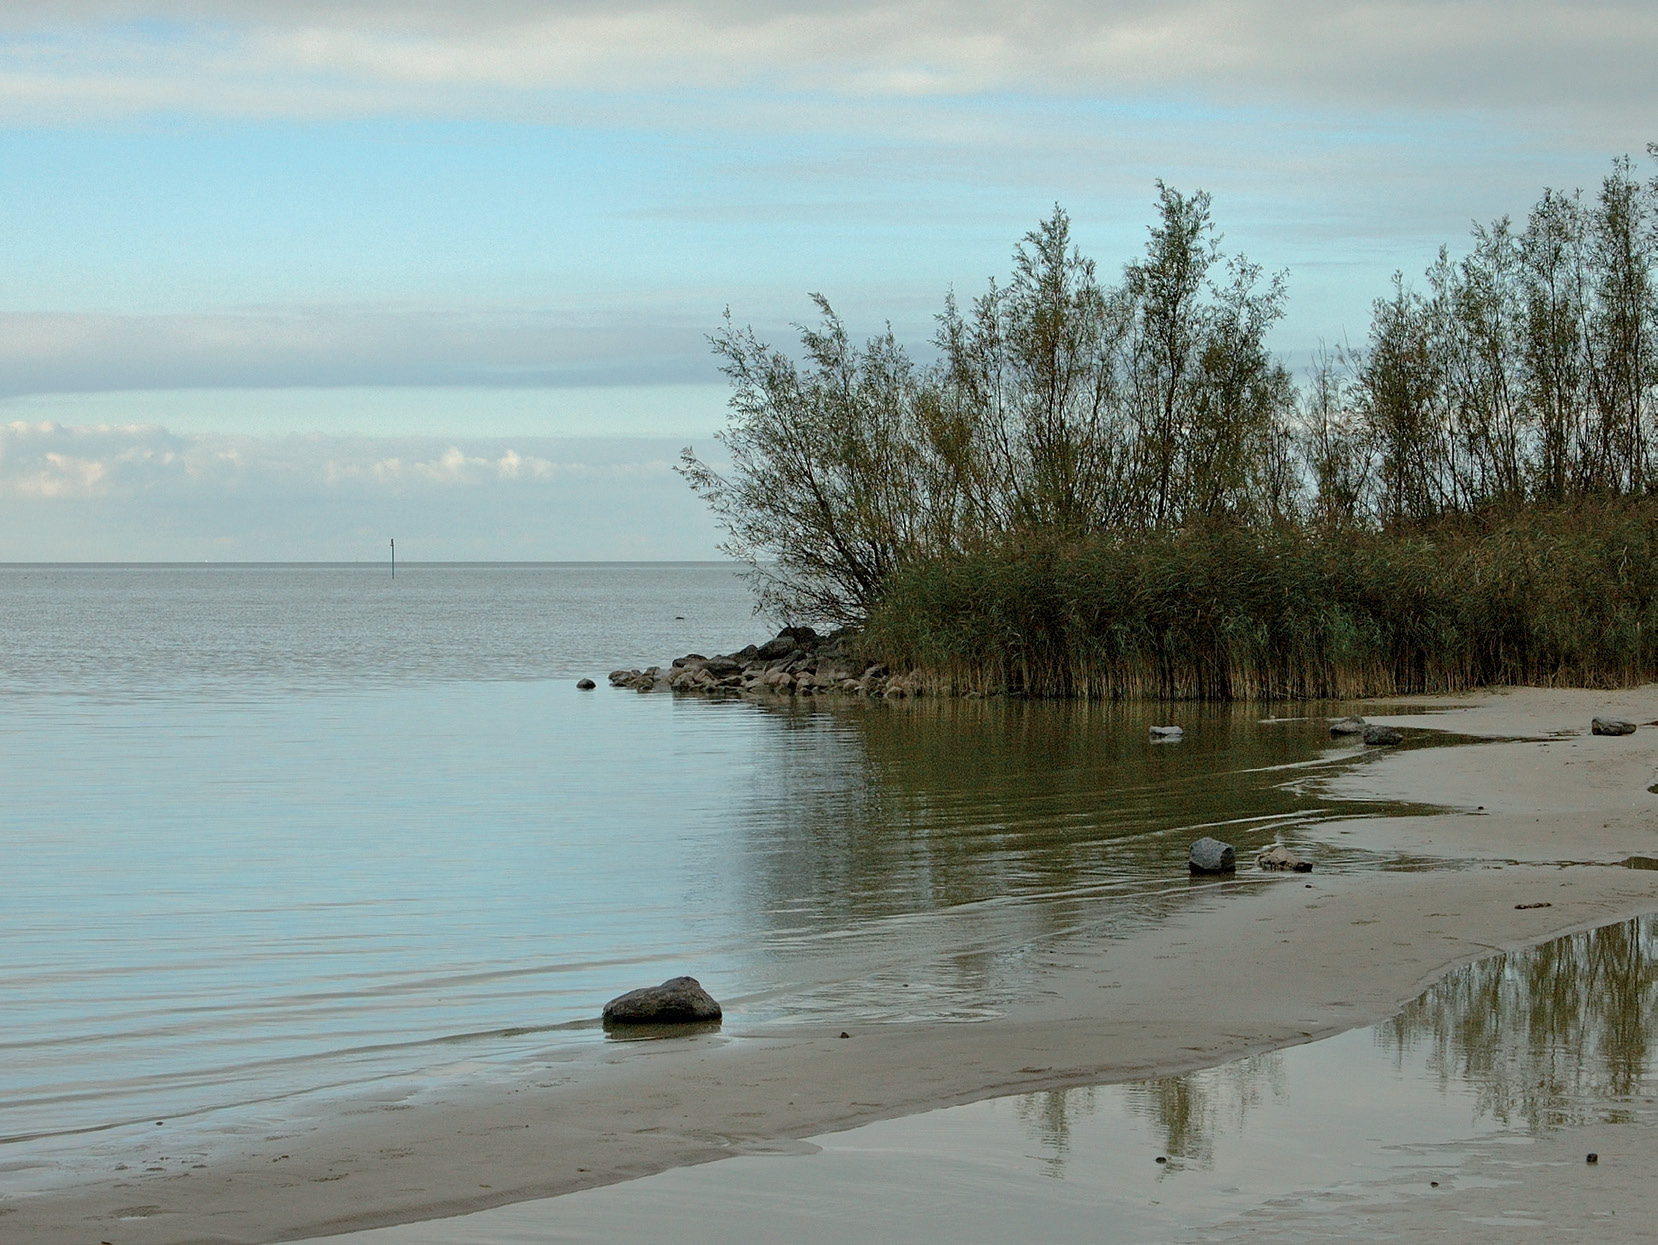 The wetlands along the shores of the IJsselmeer help to protect low-lying